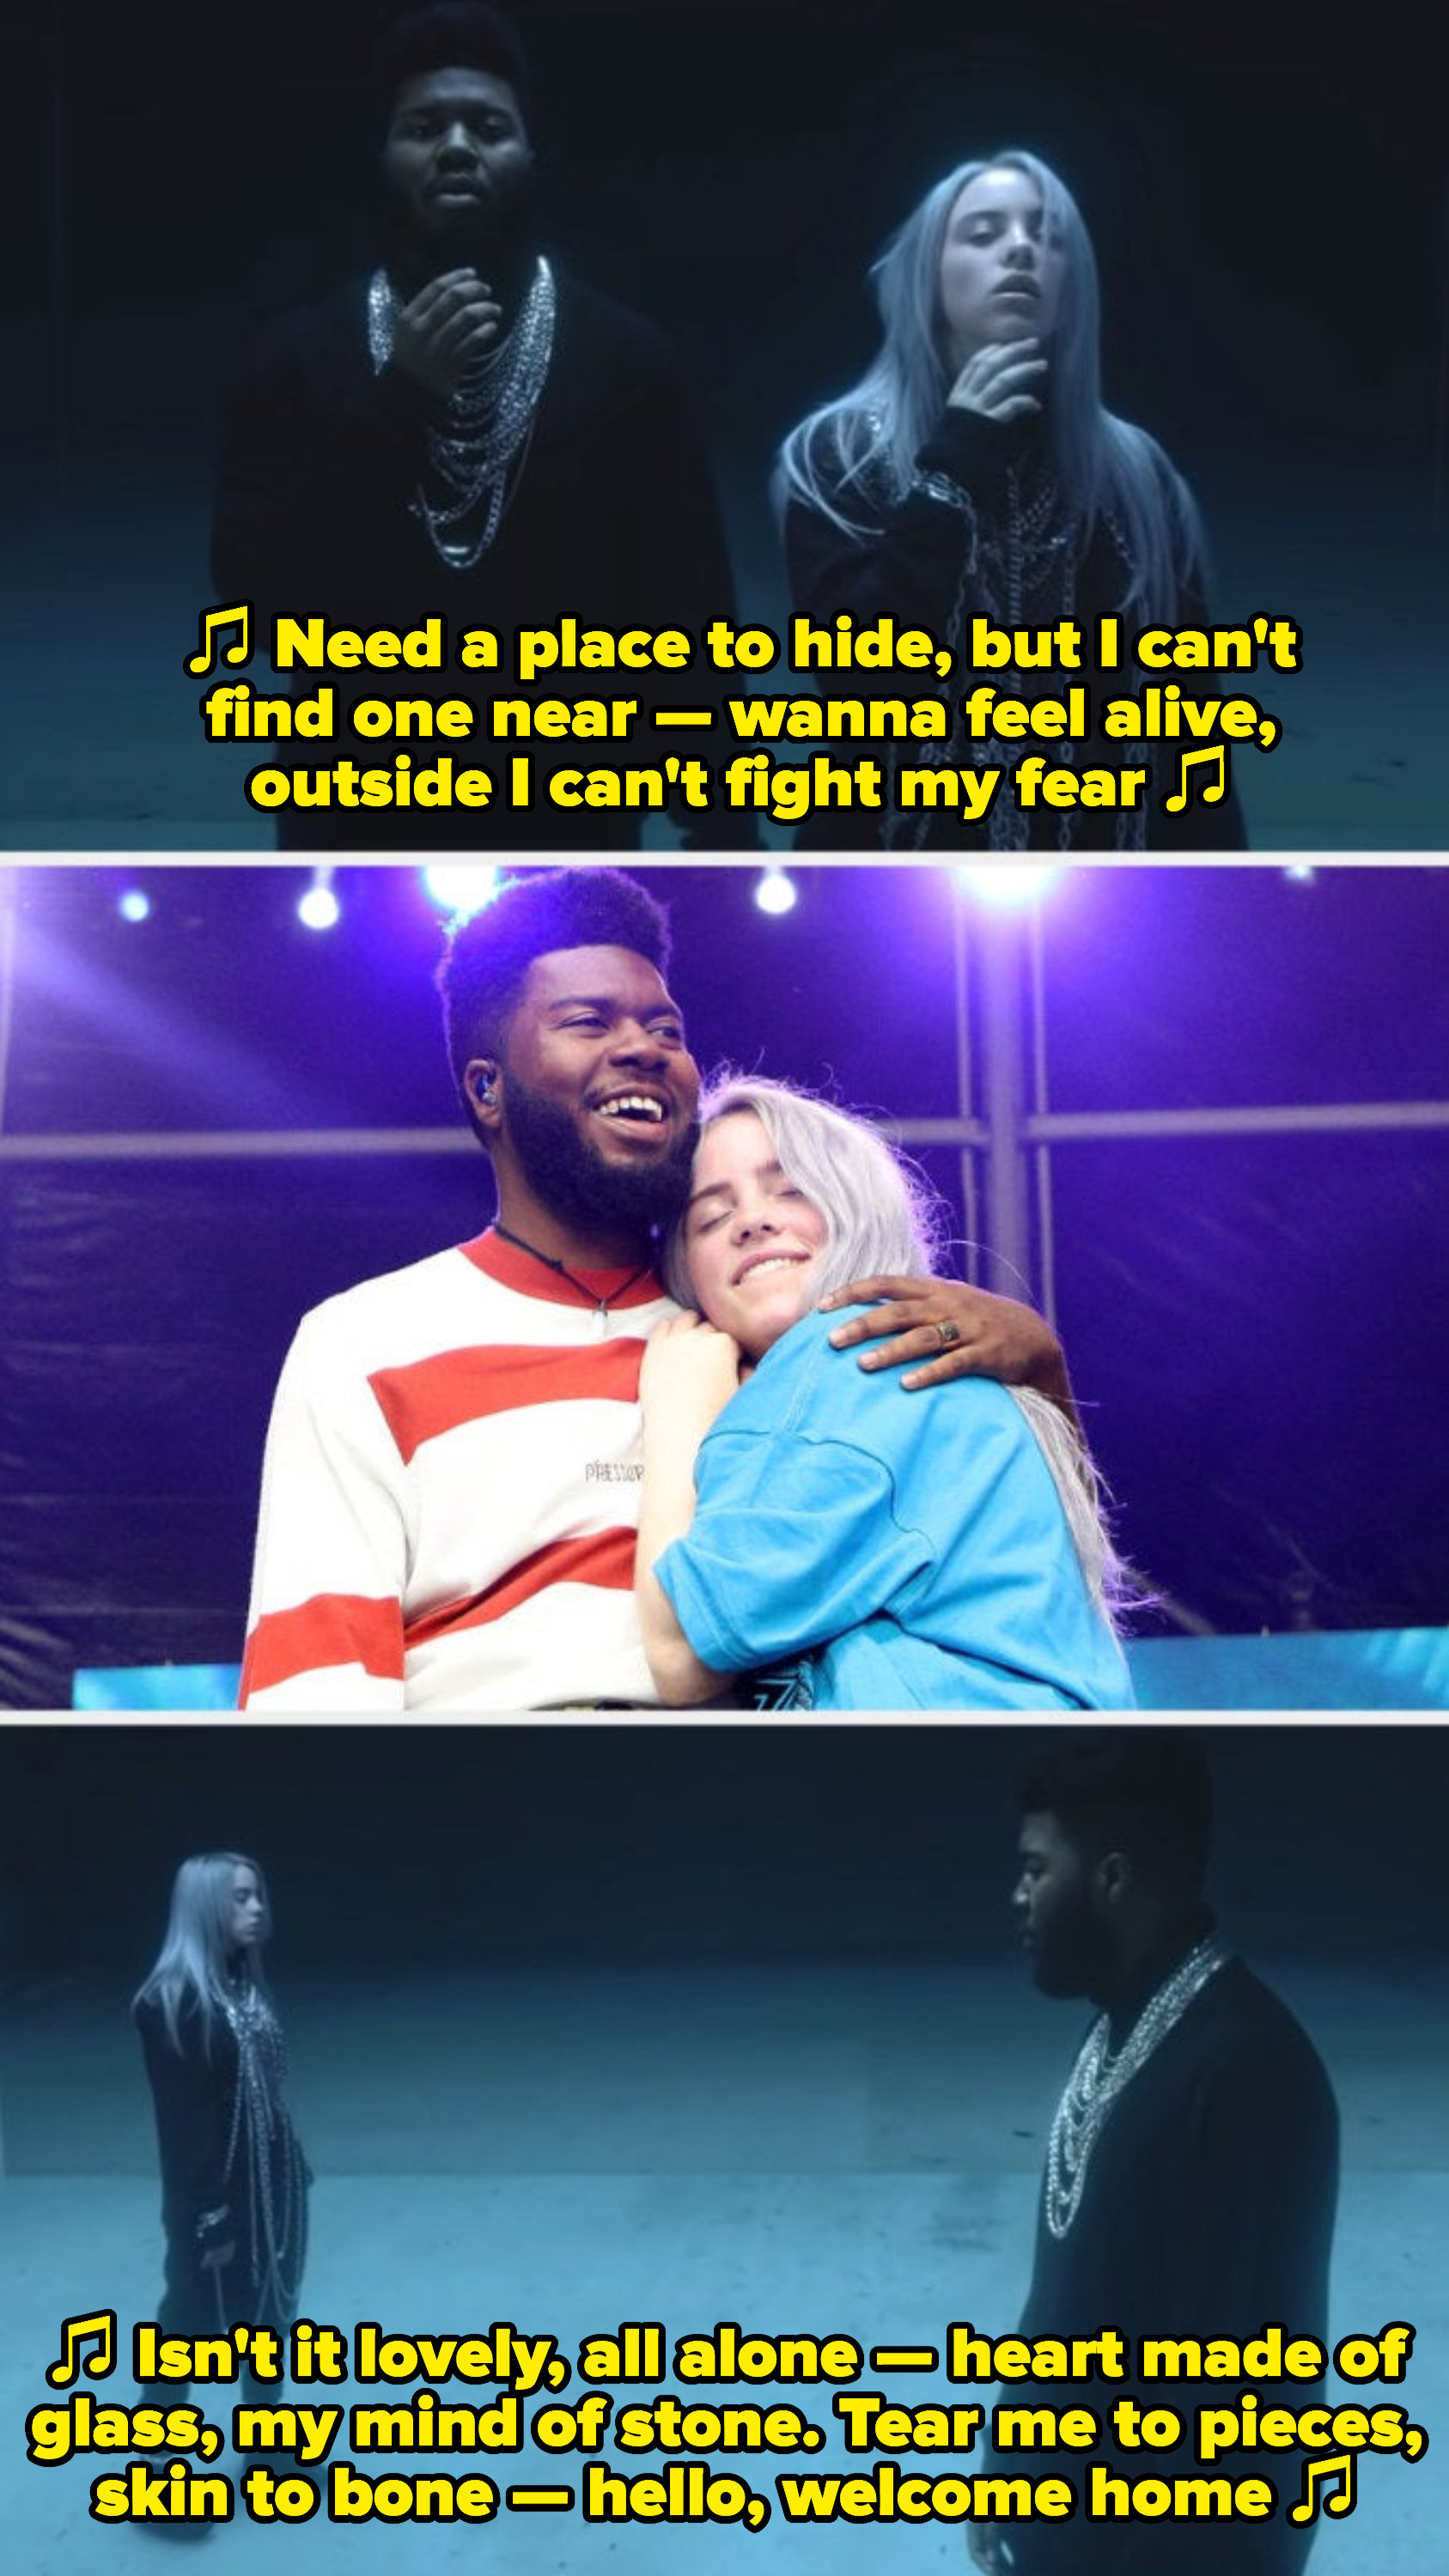 """Eilish and Khalid performing live together at Governor's Ball in 2018; Eilish and Khalid in their """"lovely"""" music video, singing: """"Need a place to hide, but I can't find one near — wanna feel alive, outside I can't fight my fear"""""""